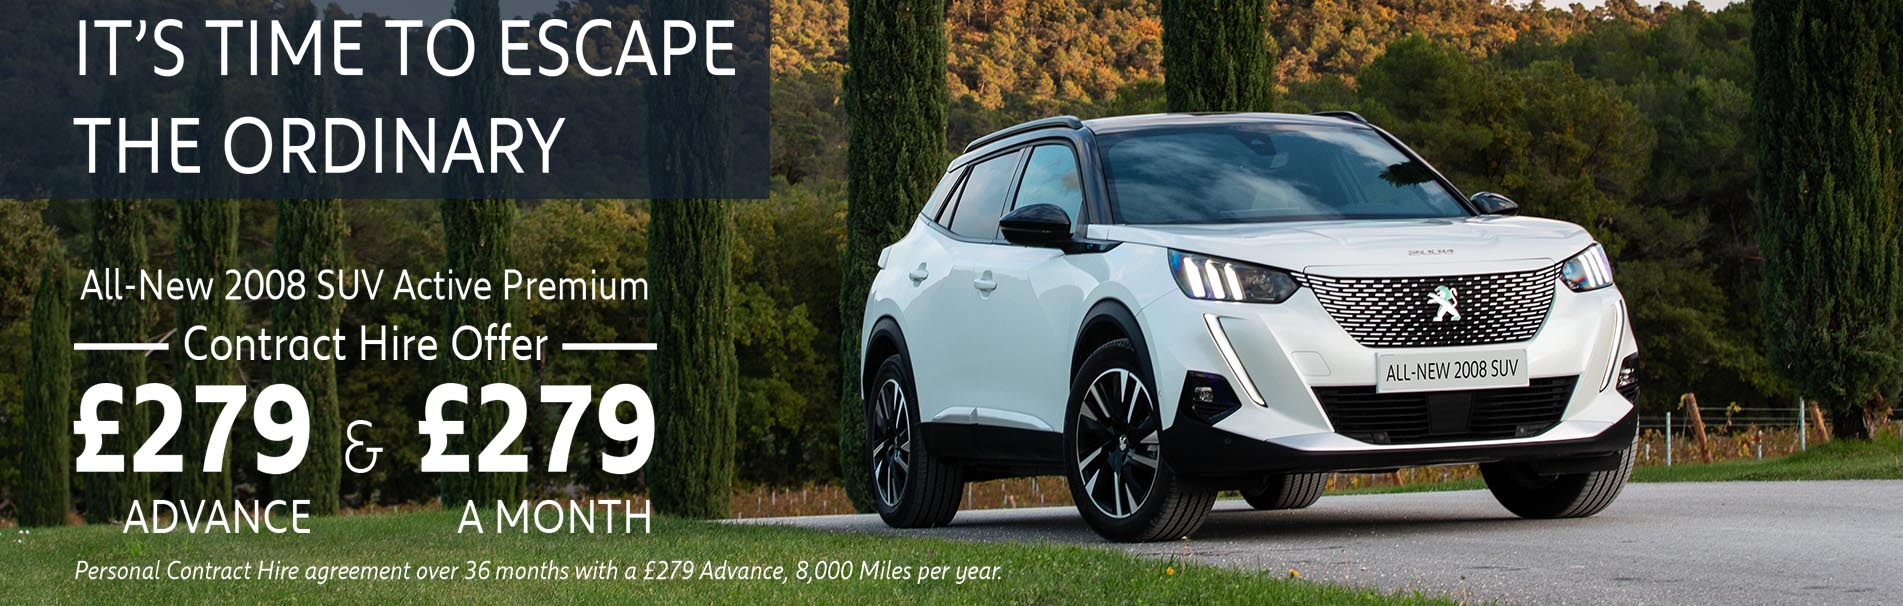 all-new-peugeot-2008-suv-active-premium-offer-sli